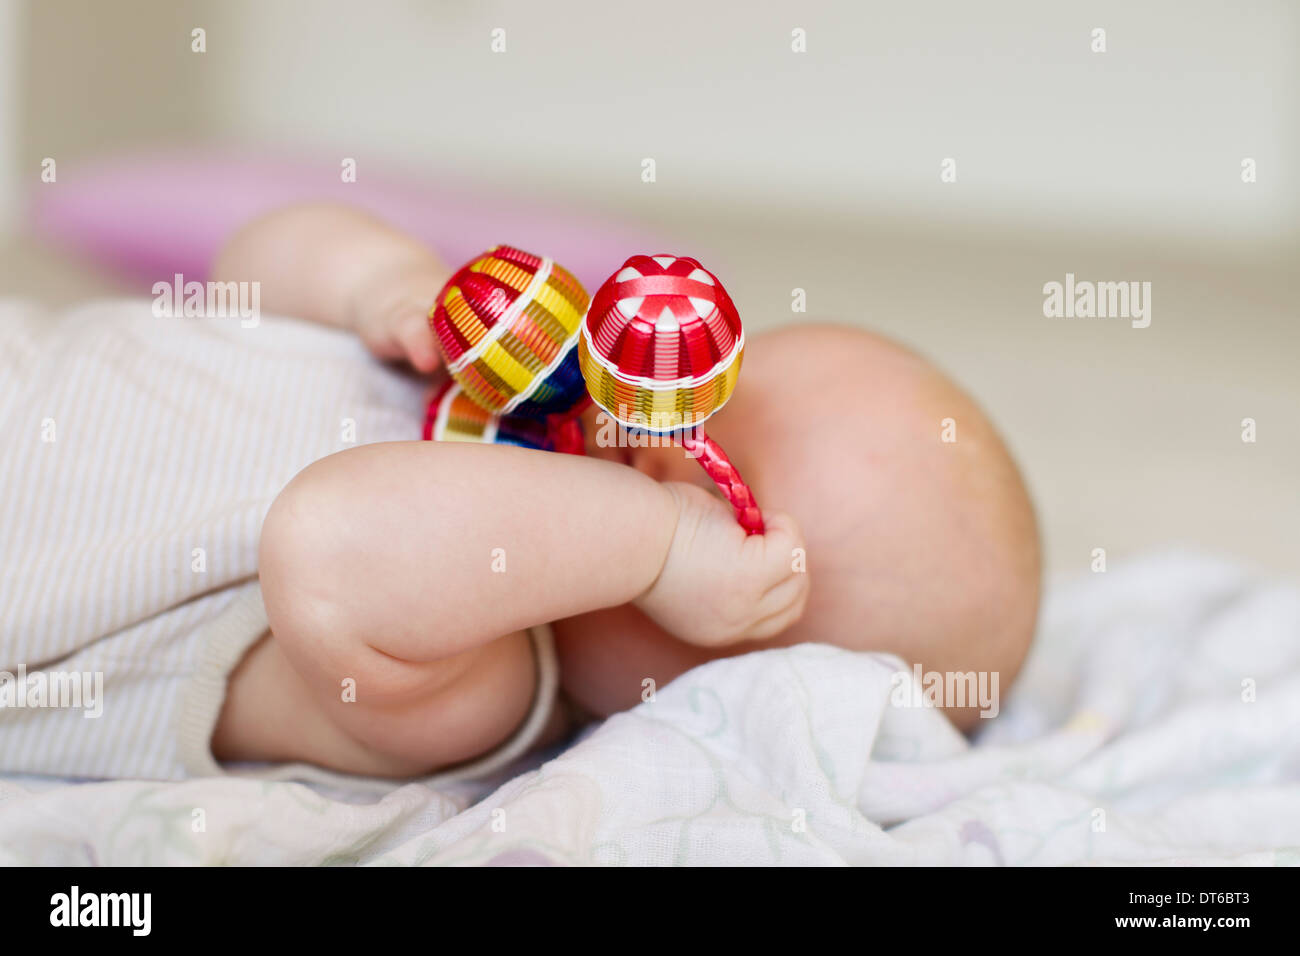 Baby girl lying with rattle covering face - Stock Image